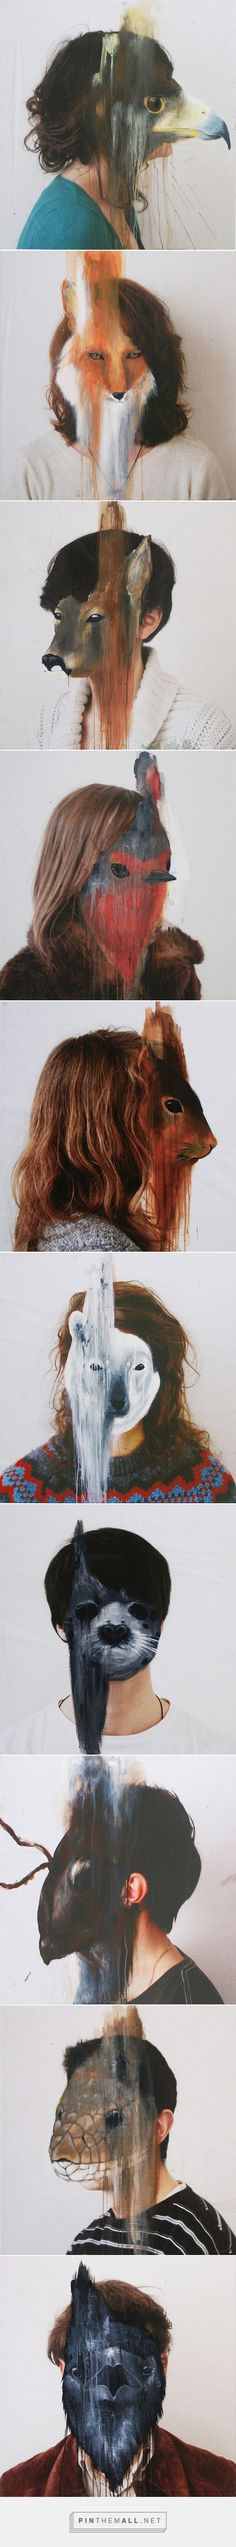 Photographed Portraits And Painted Animal Masks By Charlotte Caron